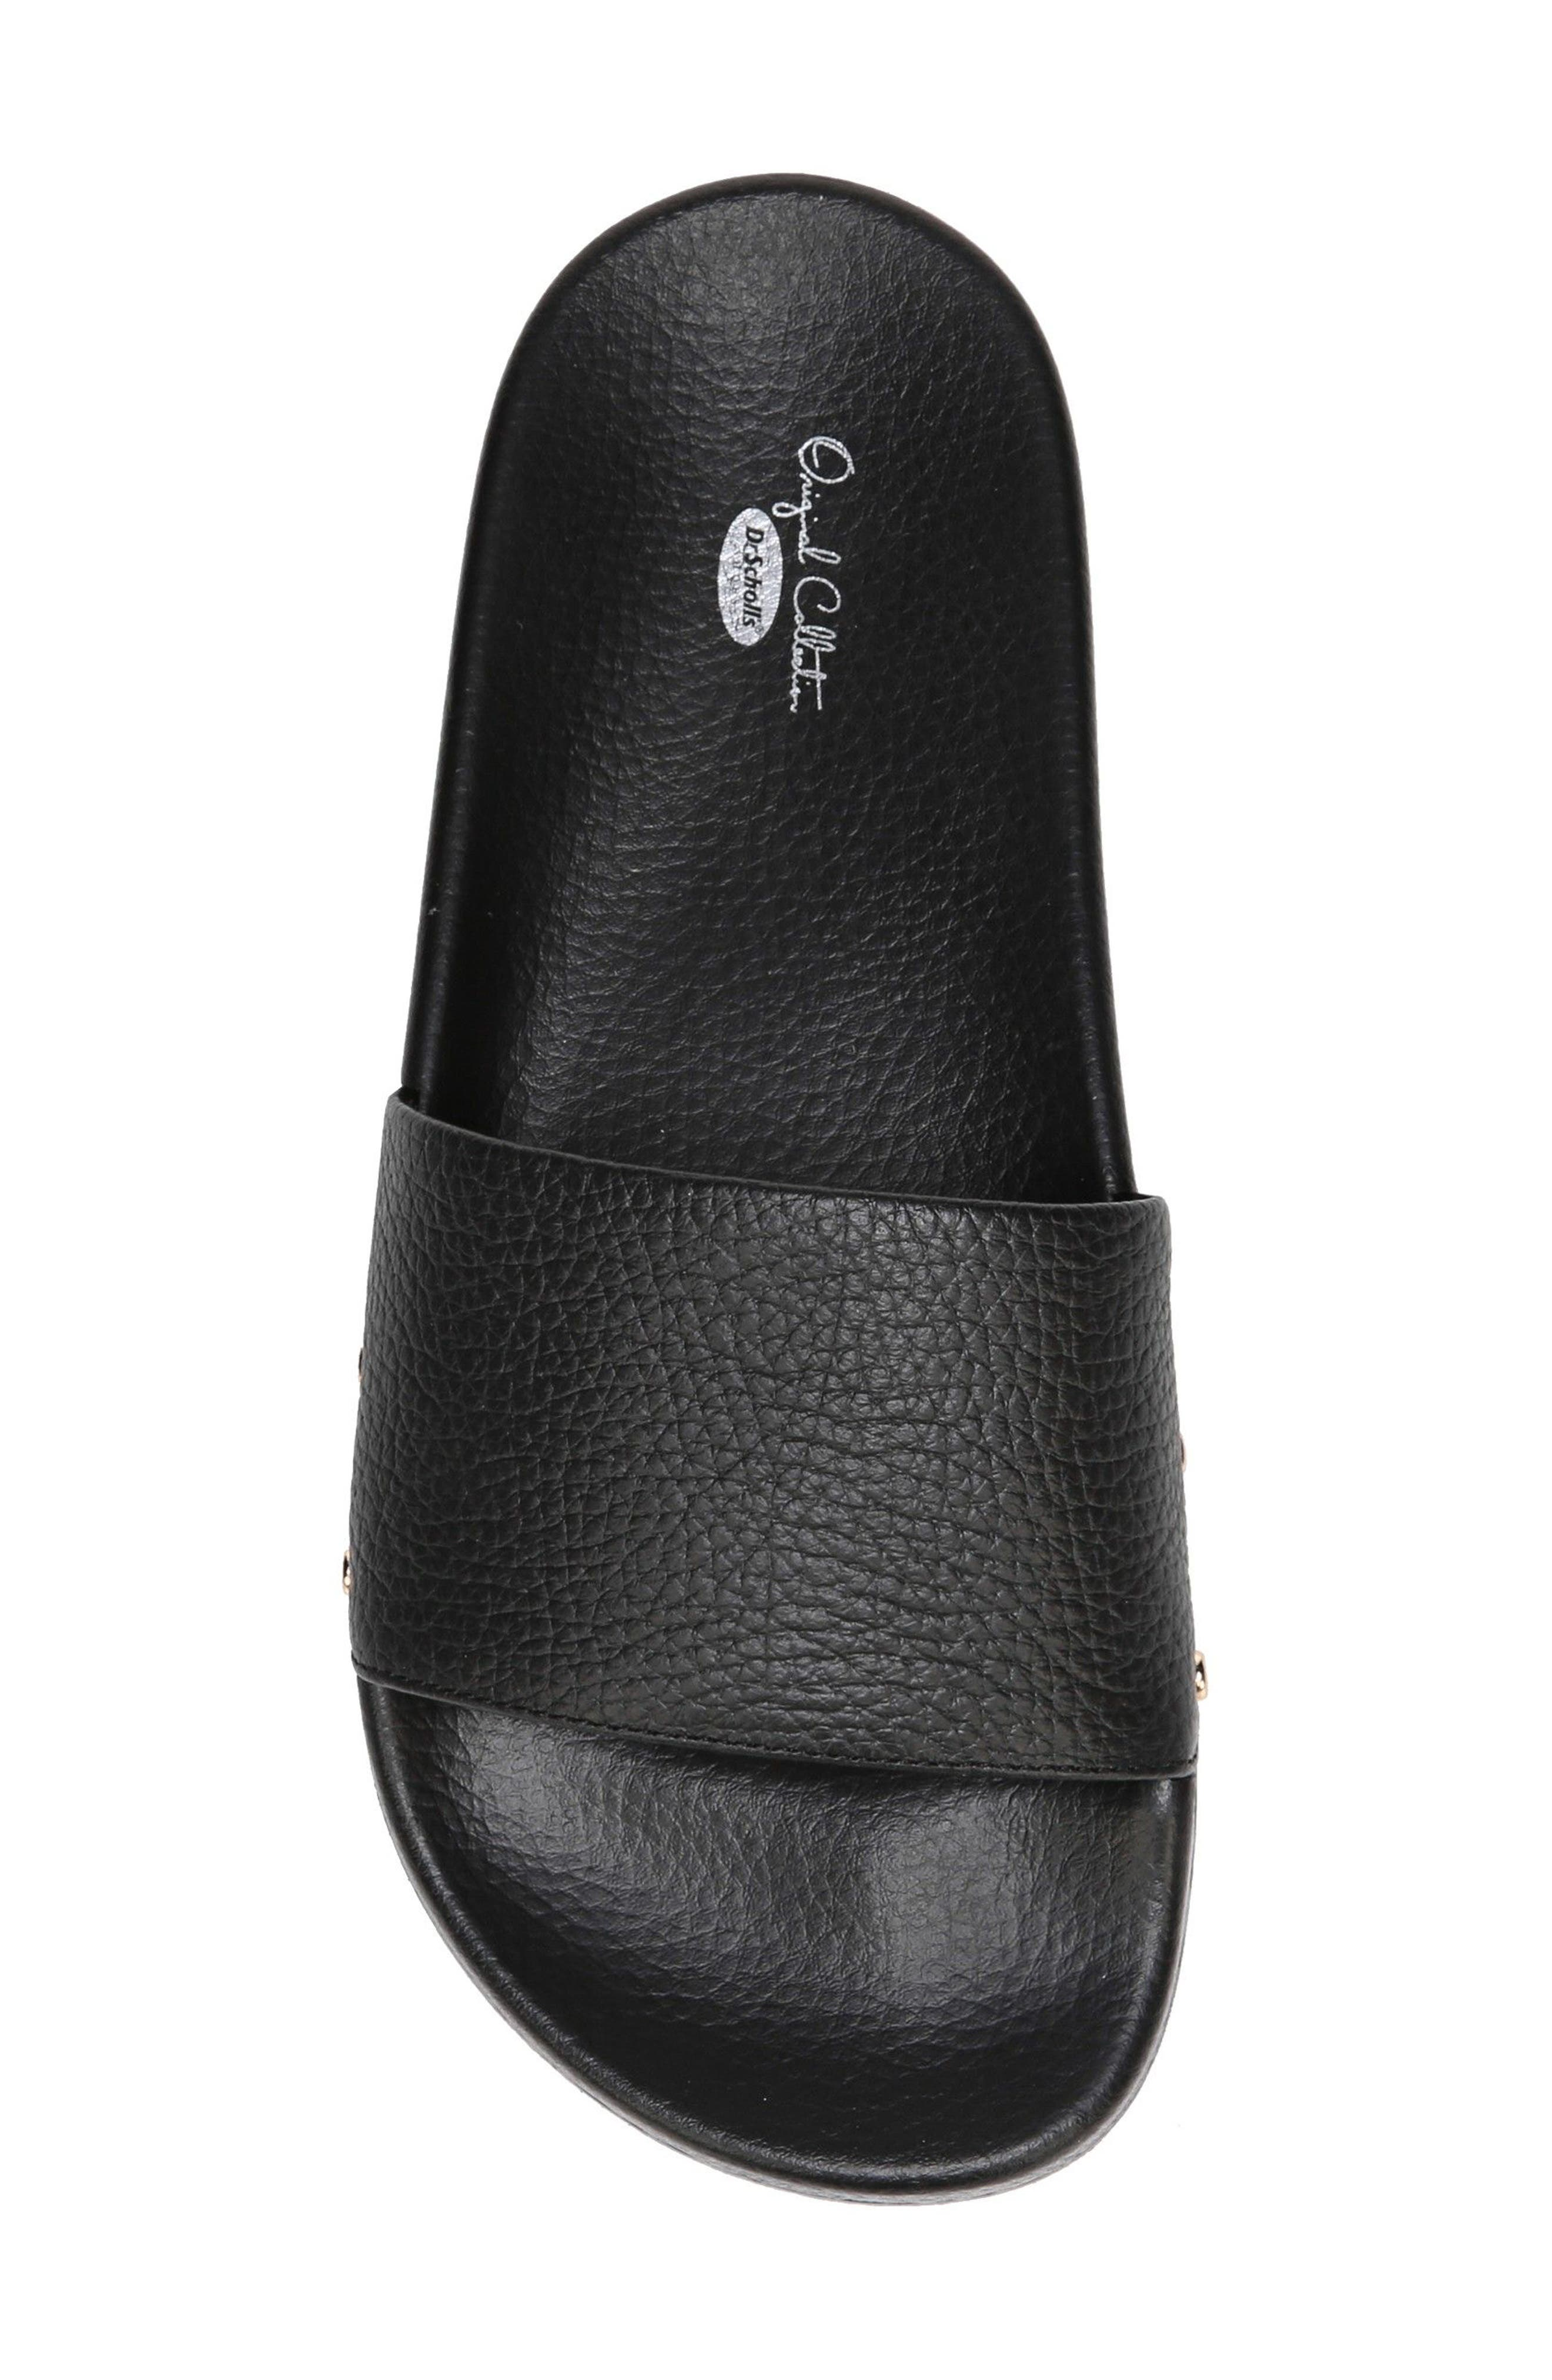 DR. SCHOLL'S, Pisces Slide Sandal, Alternate thumbnail 5, color, BLACK LEATHER